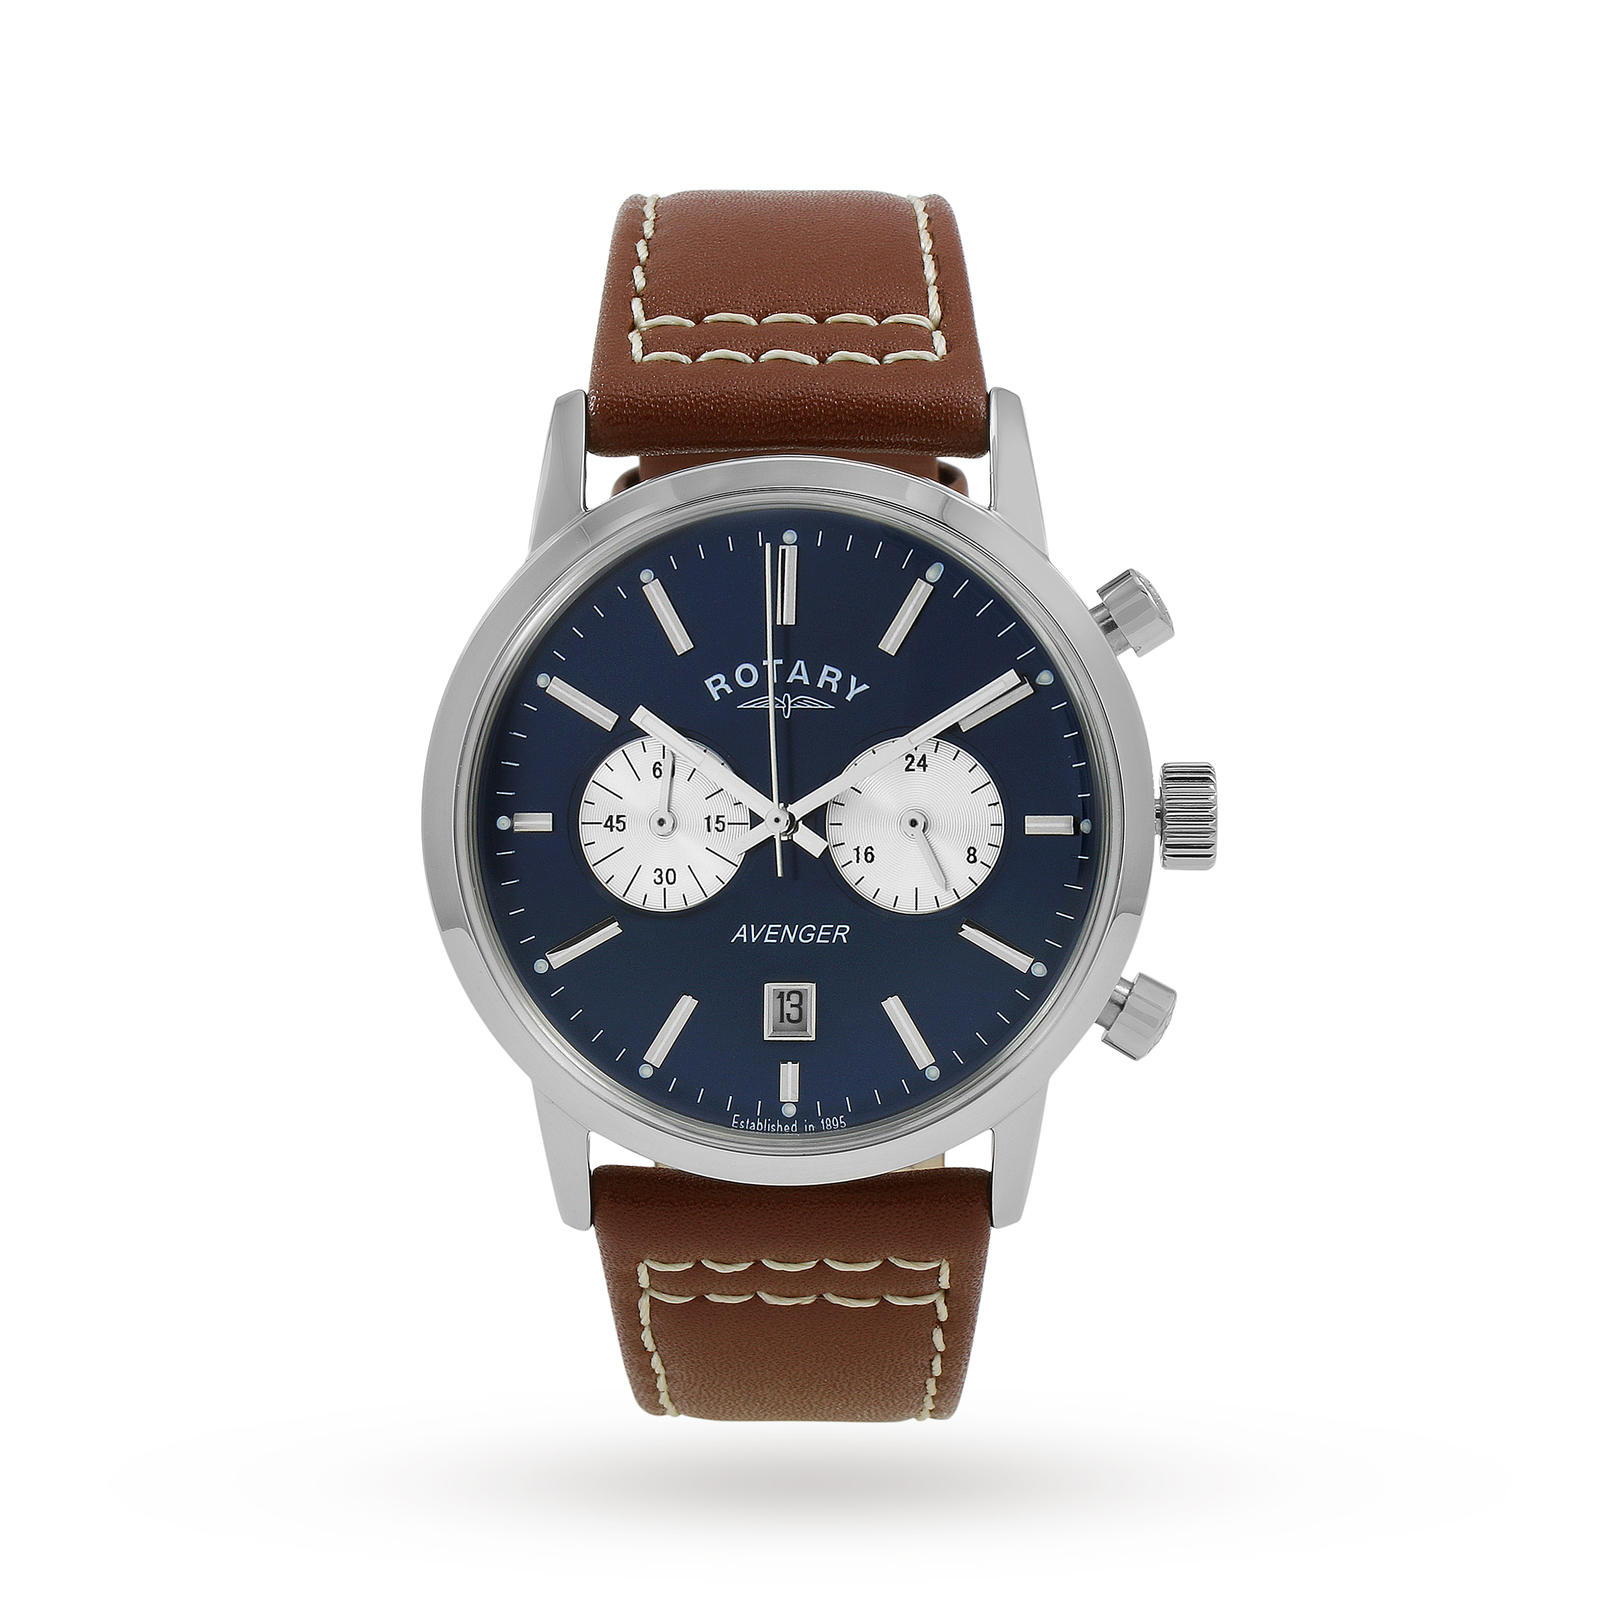 Bargain Rotary Avenger Chronograph Watch Stockists